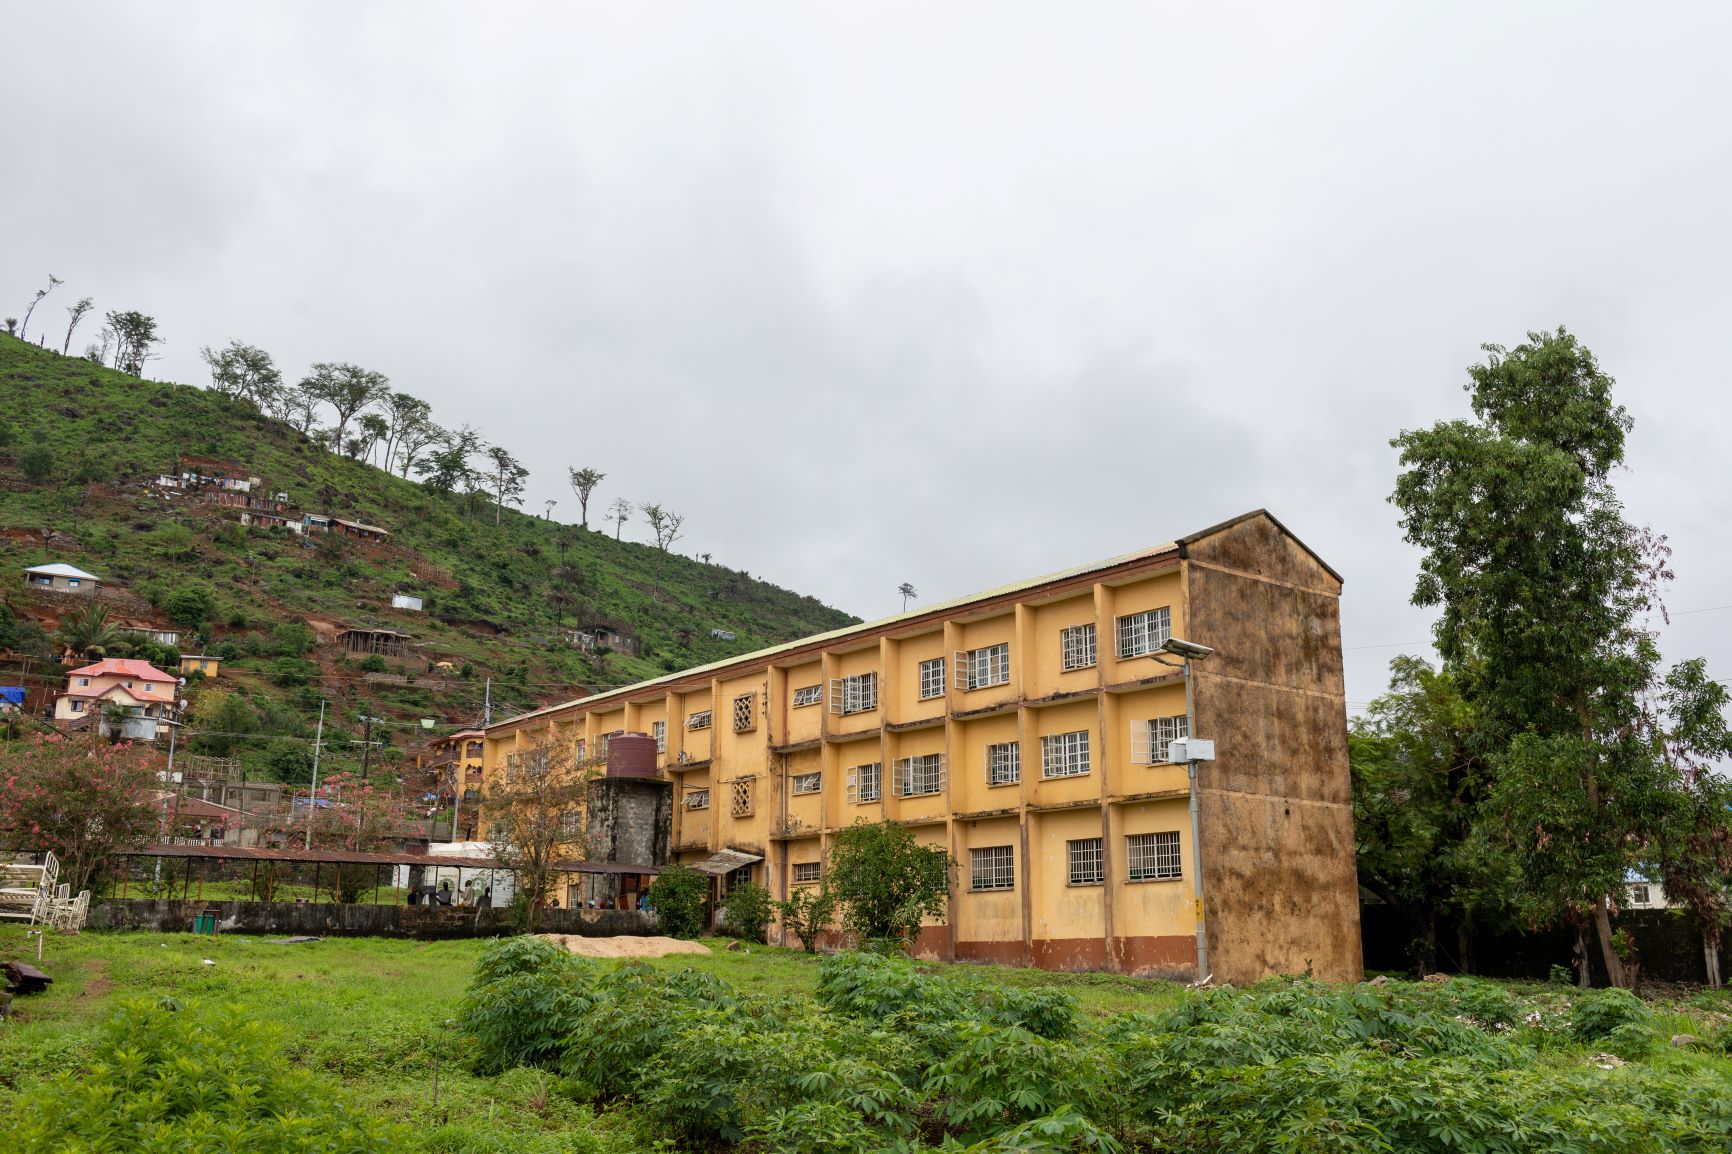 Lakka Hospital in Freetown, Sierra Leone